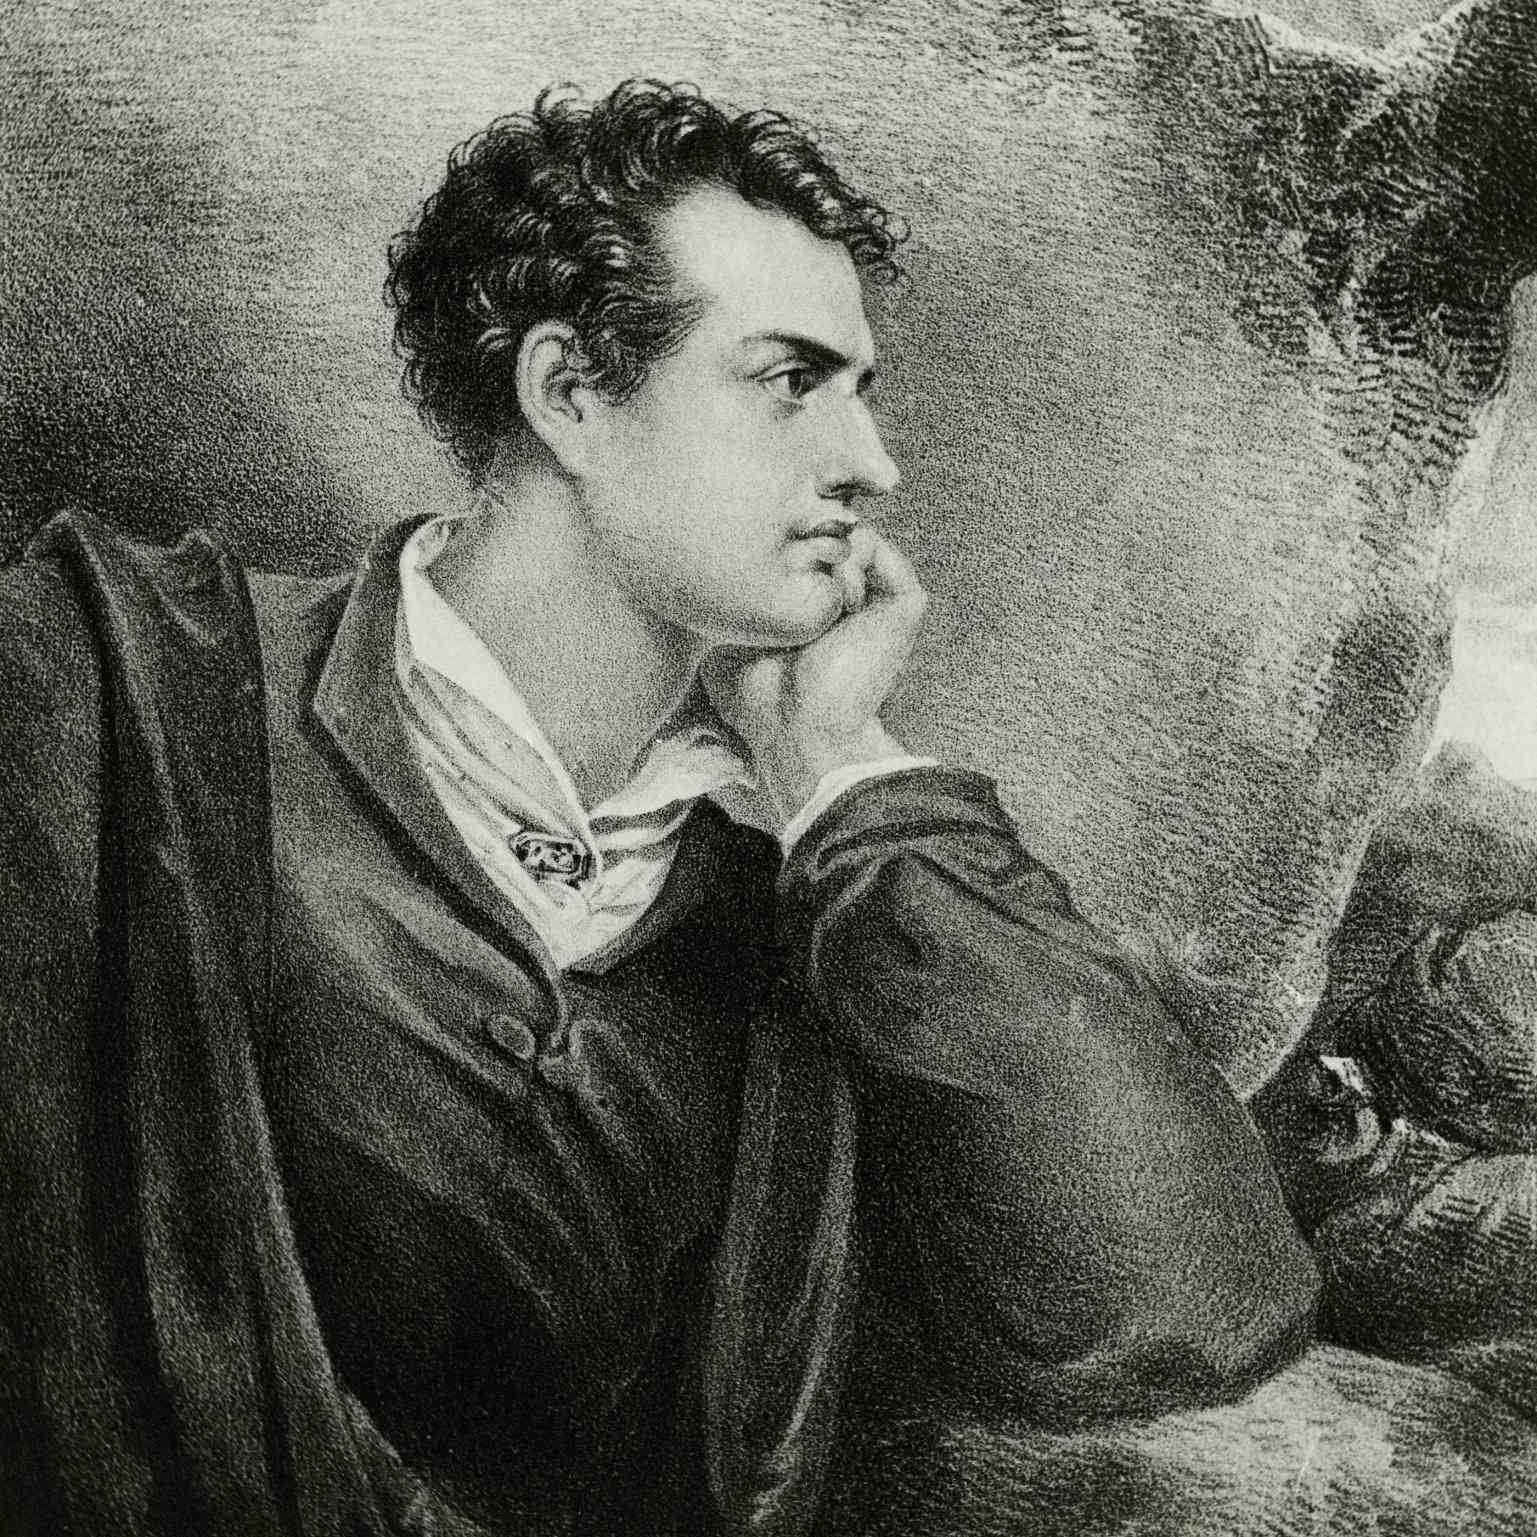 Portrait of Lord Byron, lithograph by Josef Eduard Teltscher c. 1825